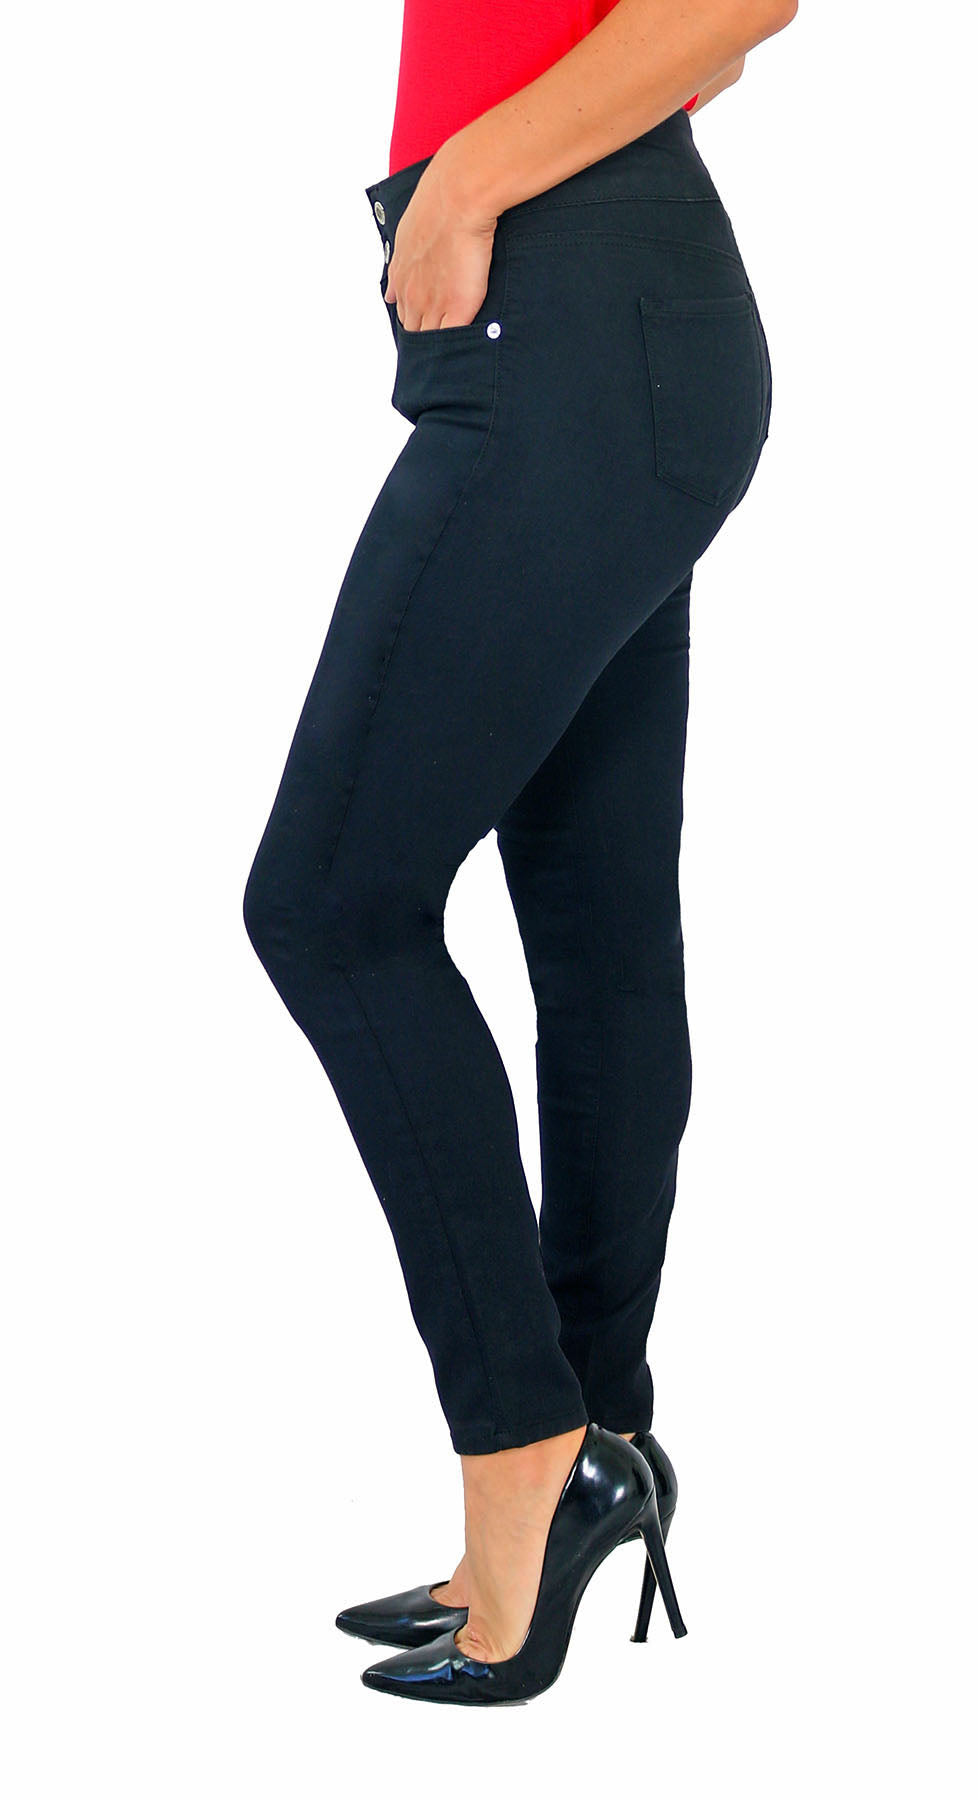 TrueSlim™ Black Two Button Jeggings